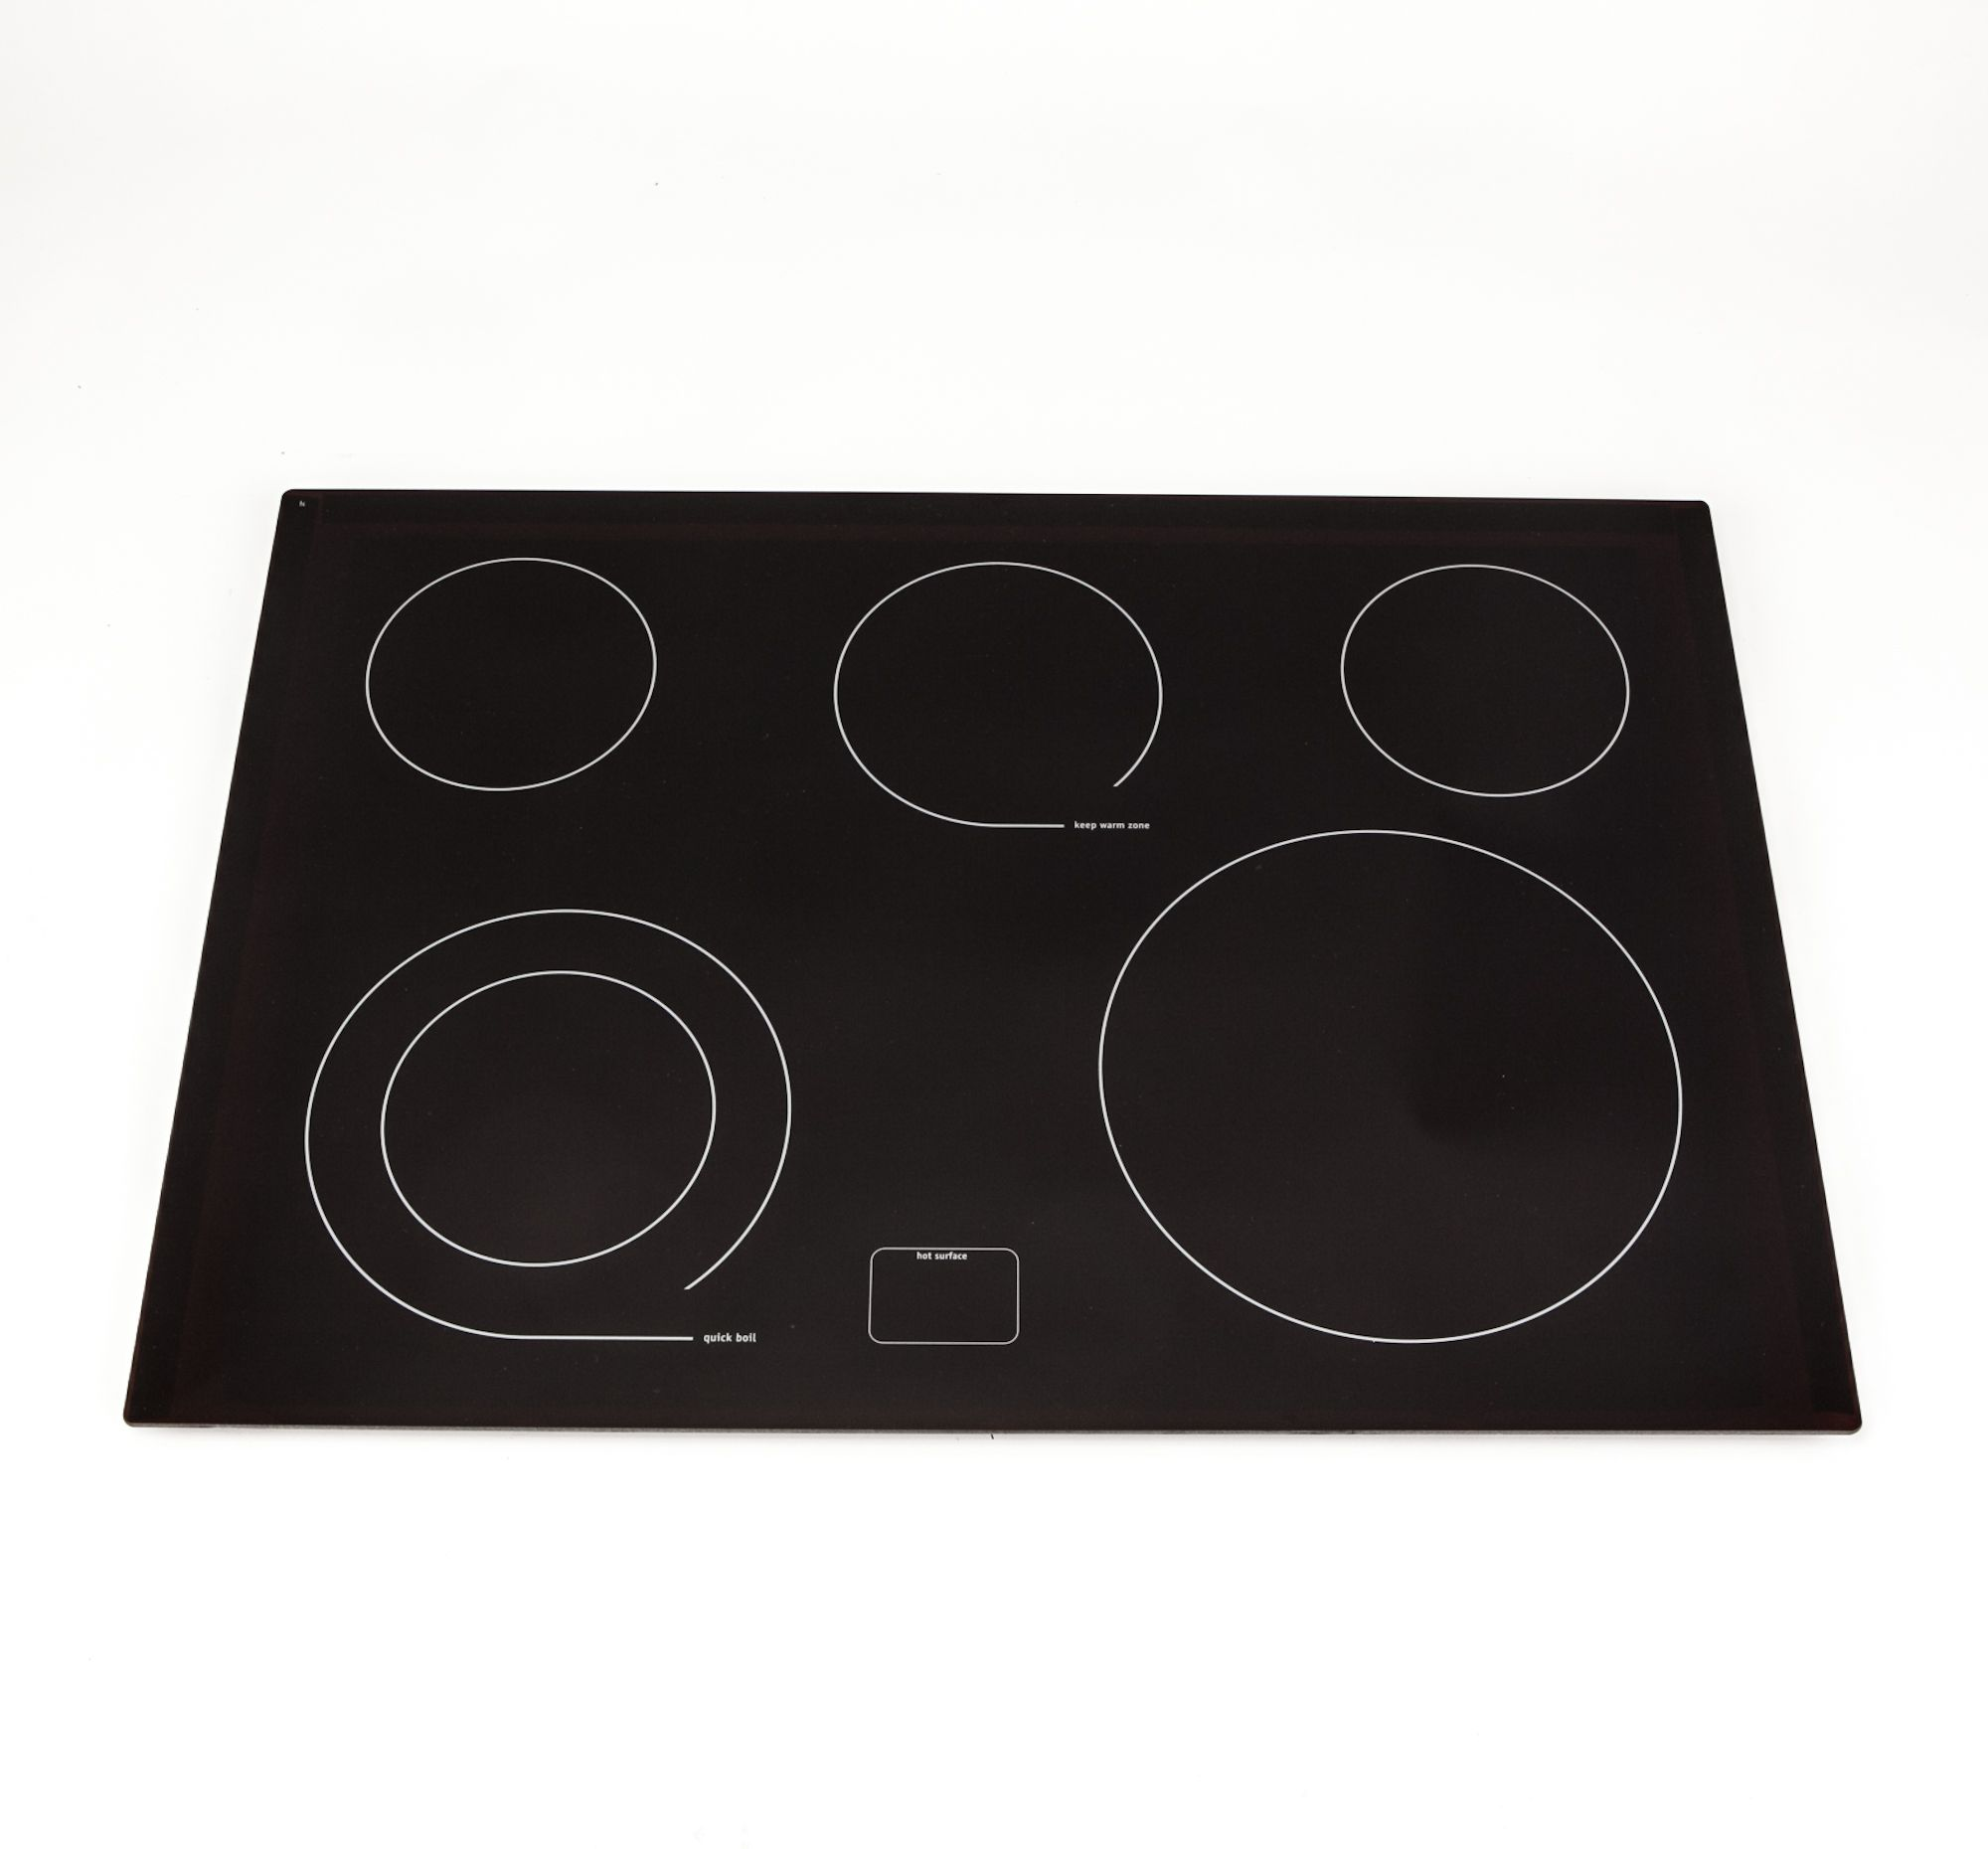 How To Replace Electric Cooktop